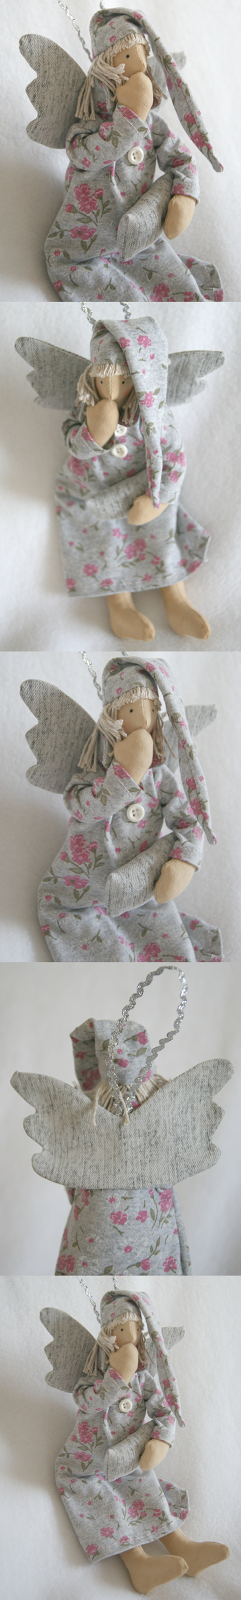 tilda angel, sleepy angel, sleeping angel, tone finnanger pattern, handmade